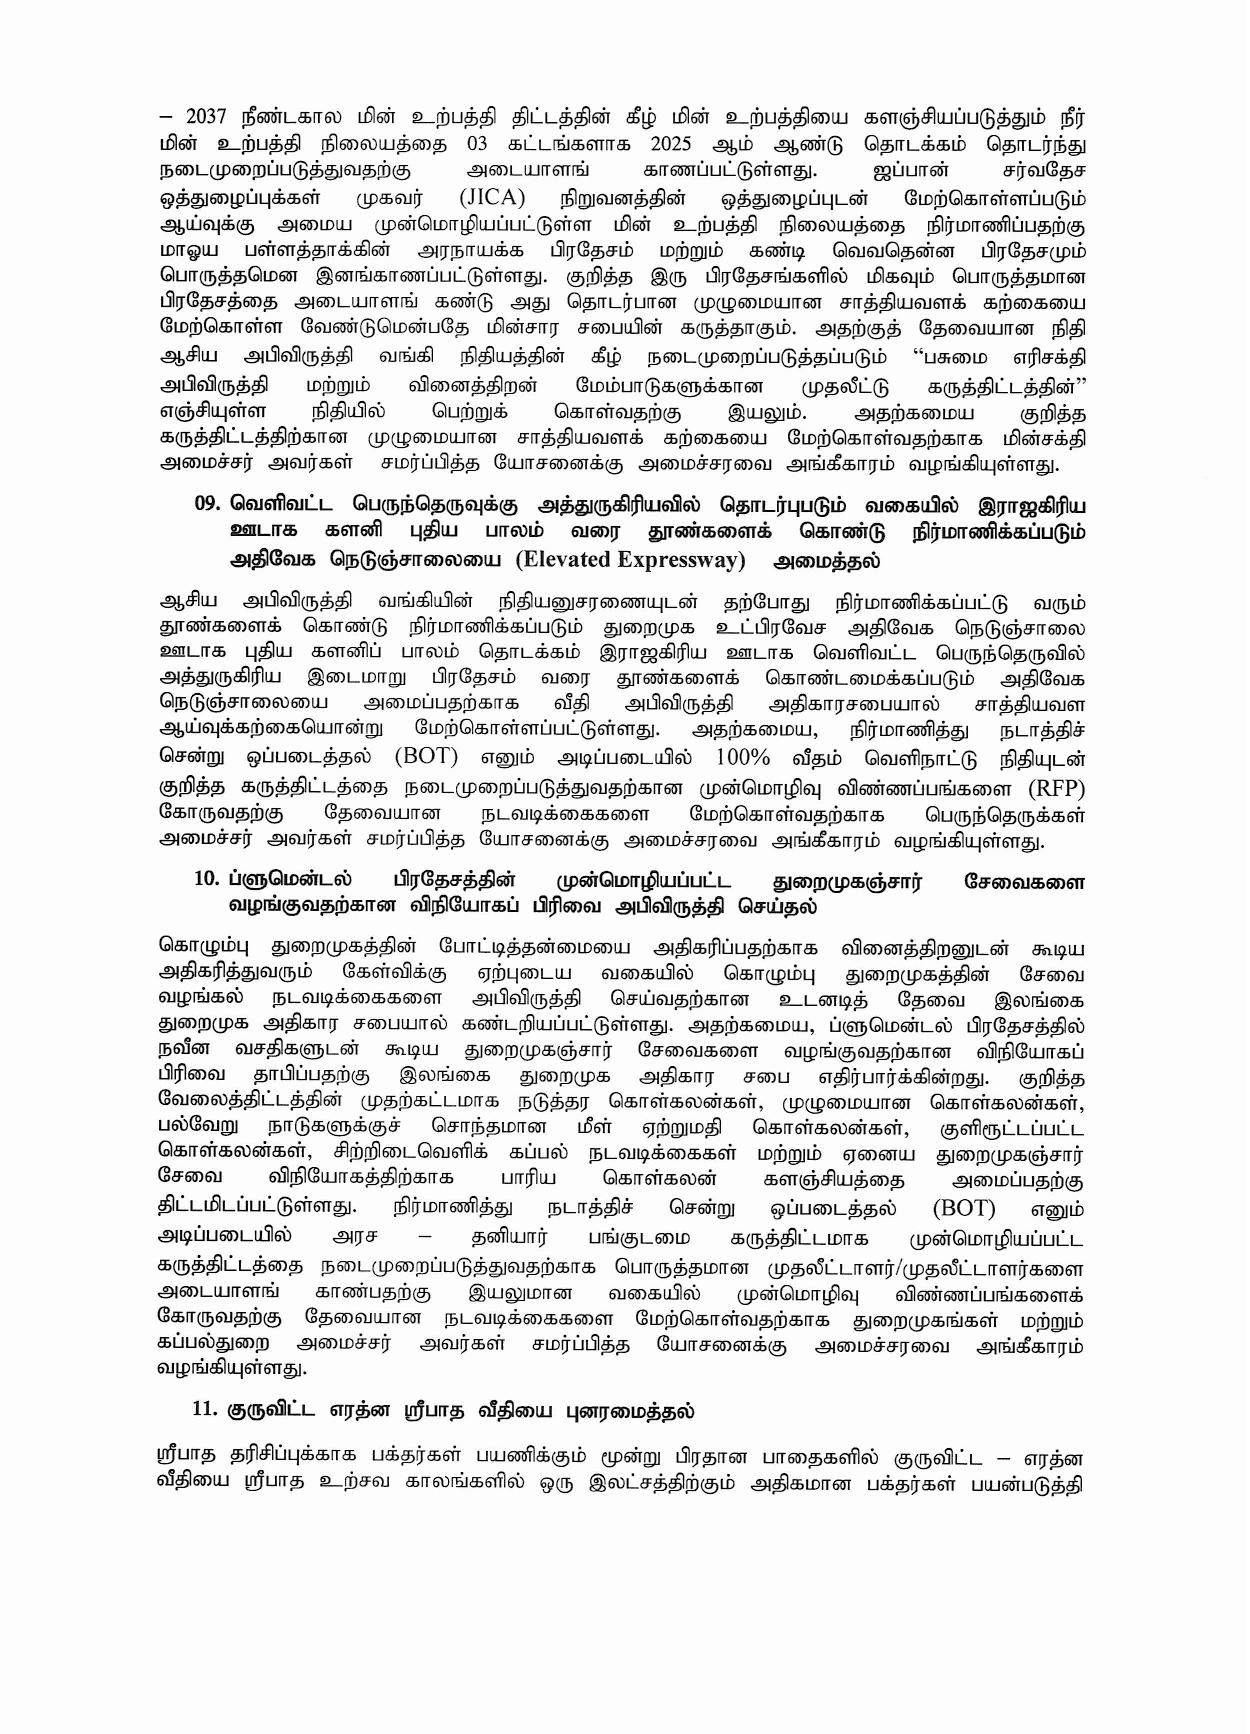 Cabinet Decision on 25.01.2021 Tamil page 004